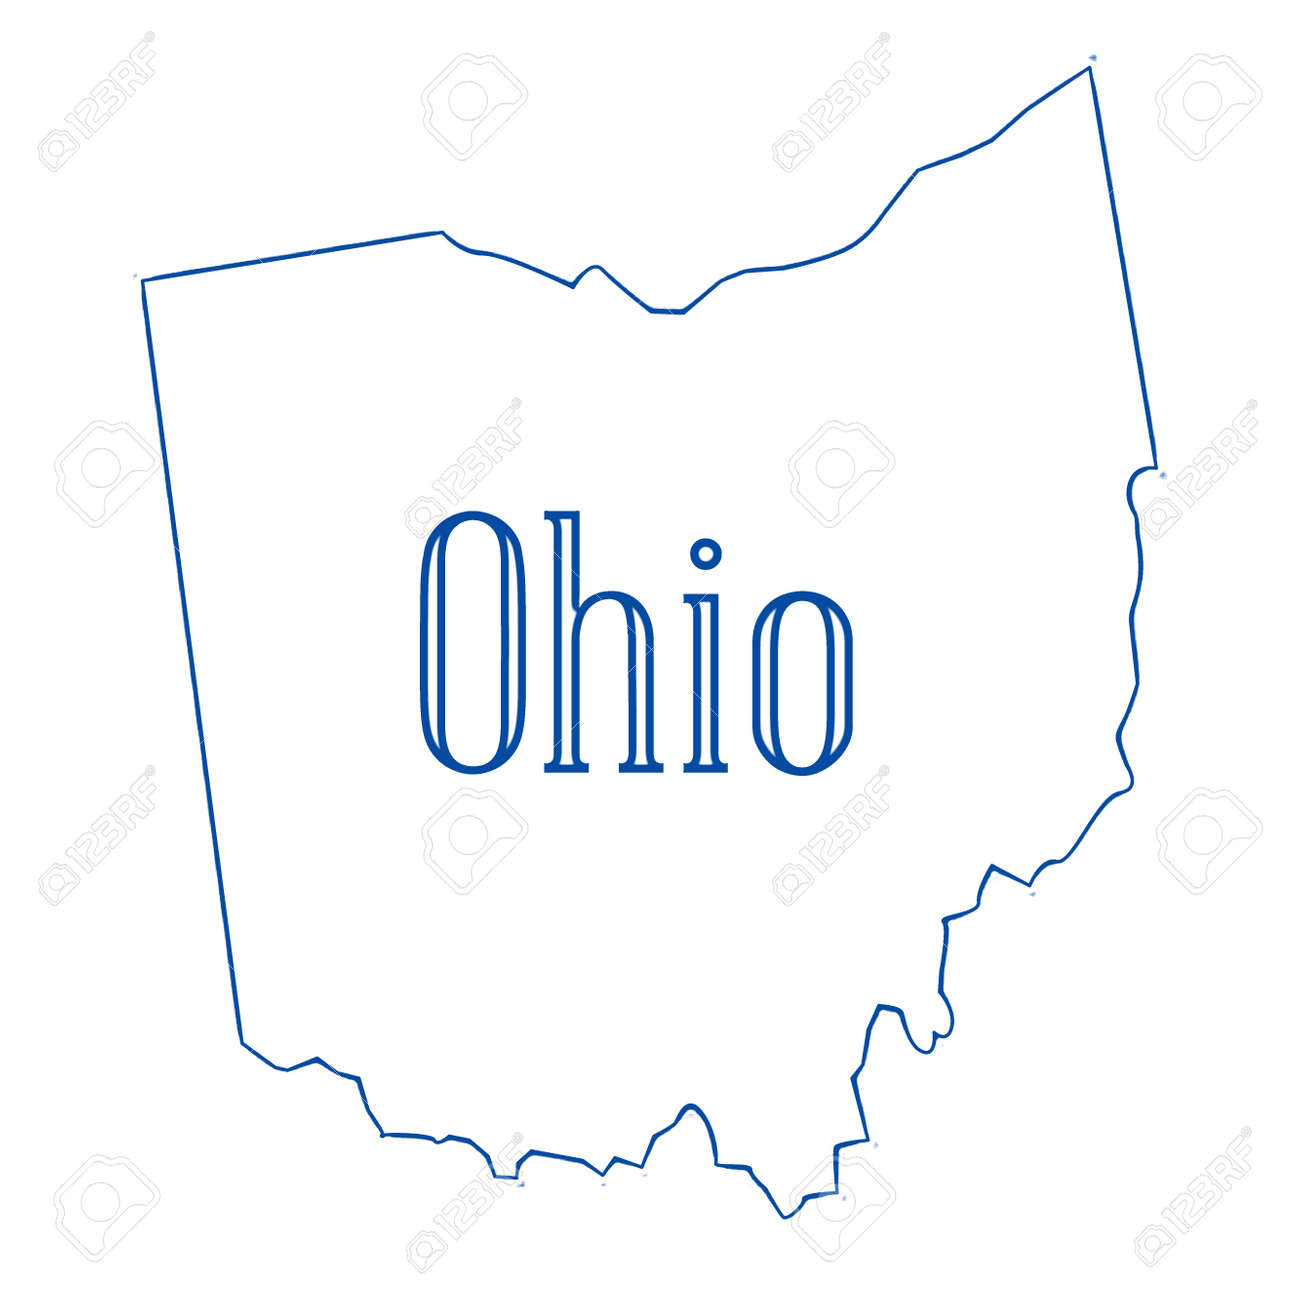 Outline Map Of Ohio.Outline Map Of The State Of Ohio Stock Photo Picture And Royalty